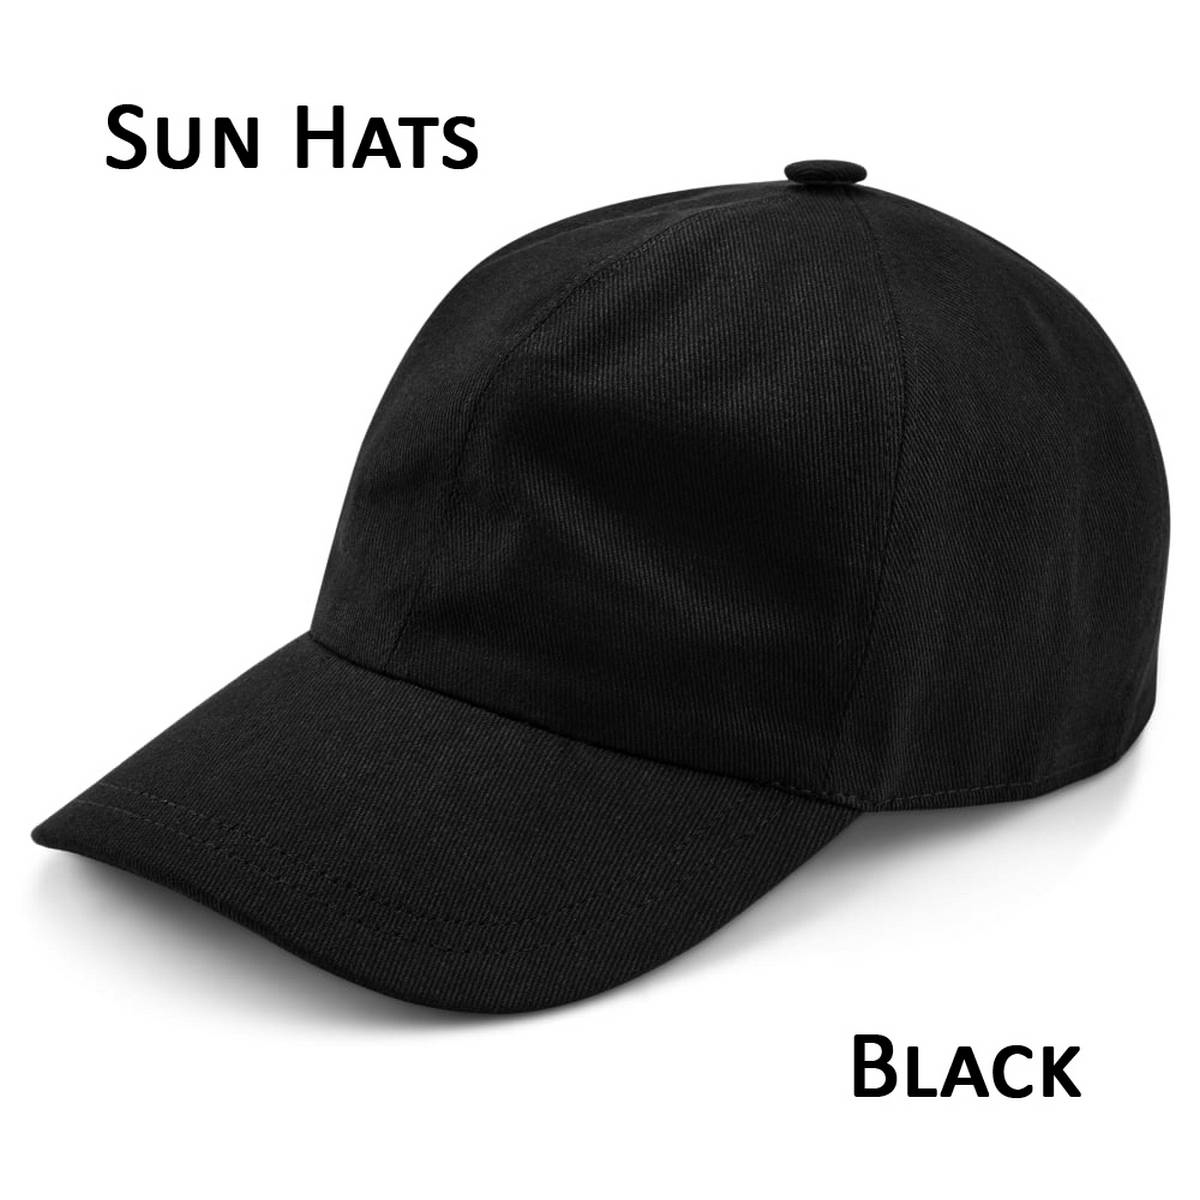 Hats And Cap With Curved Brim With Adjustable Strap For Men